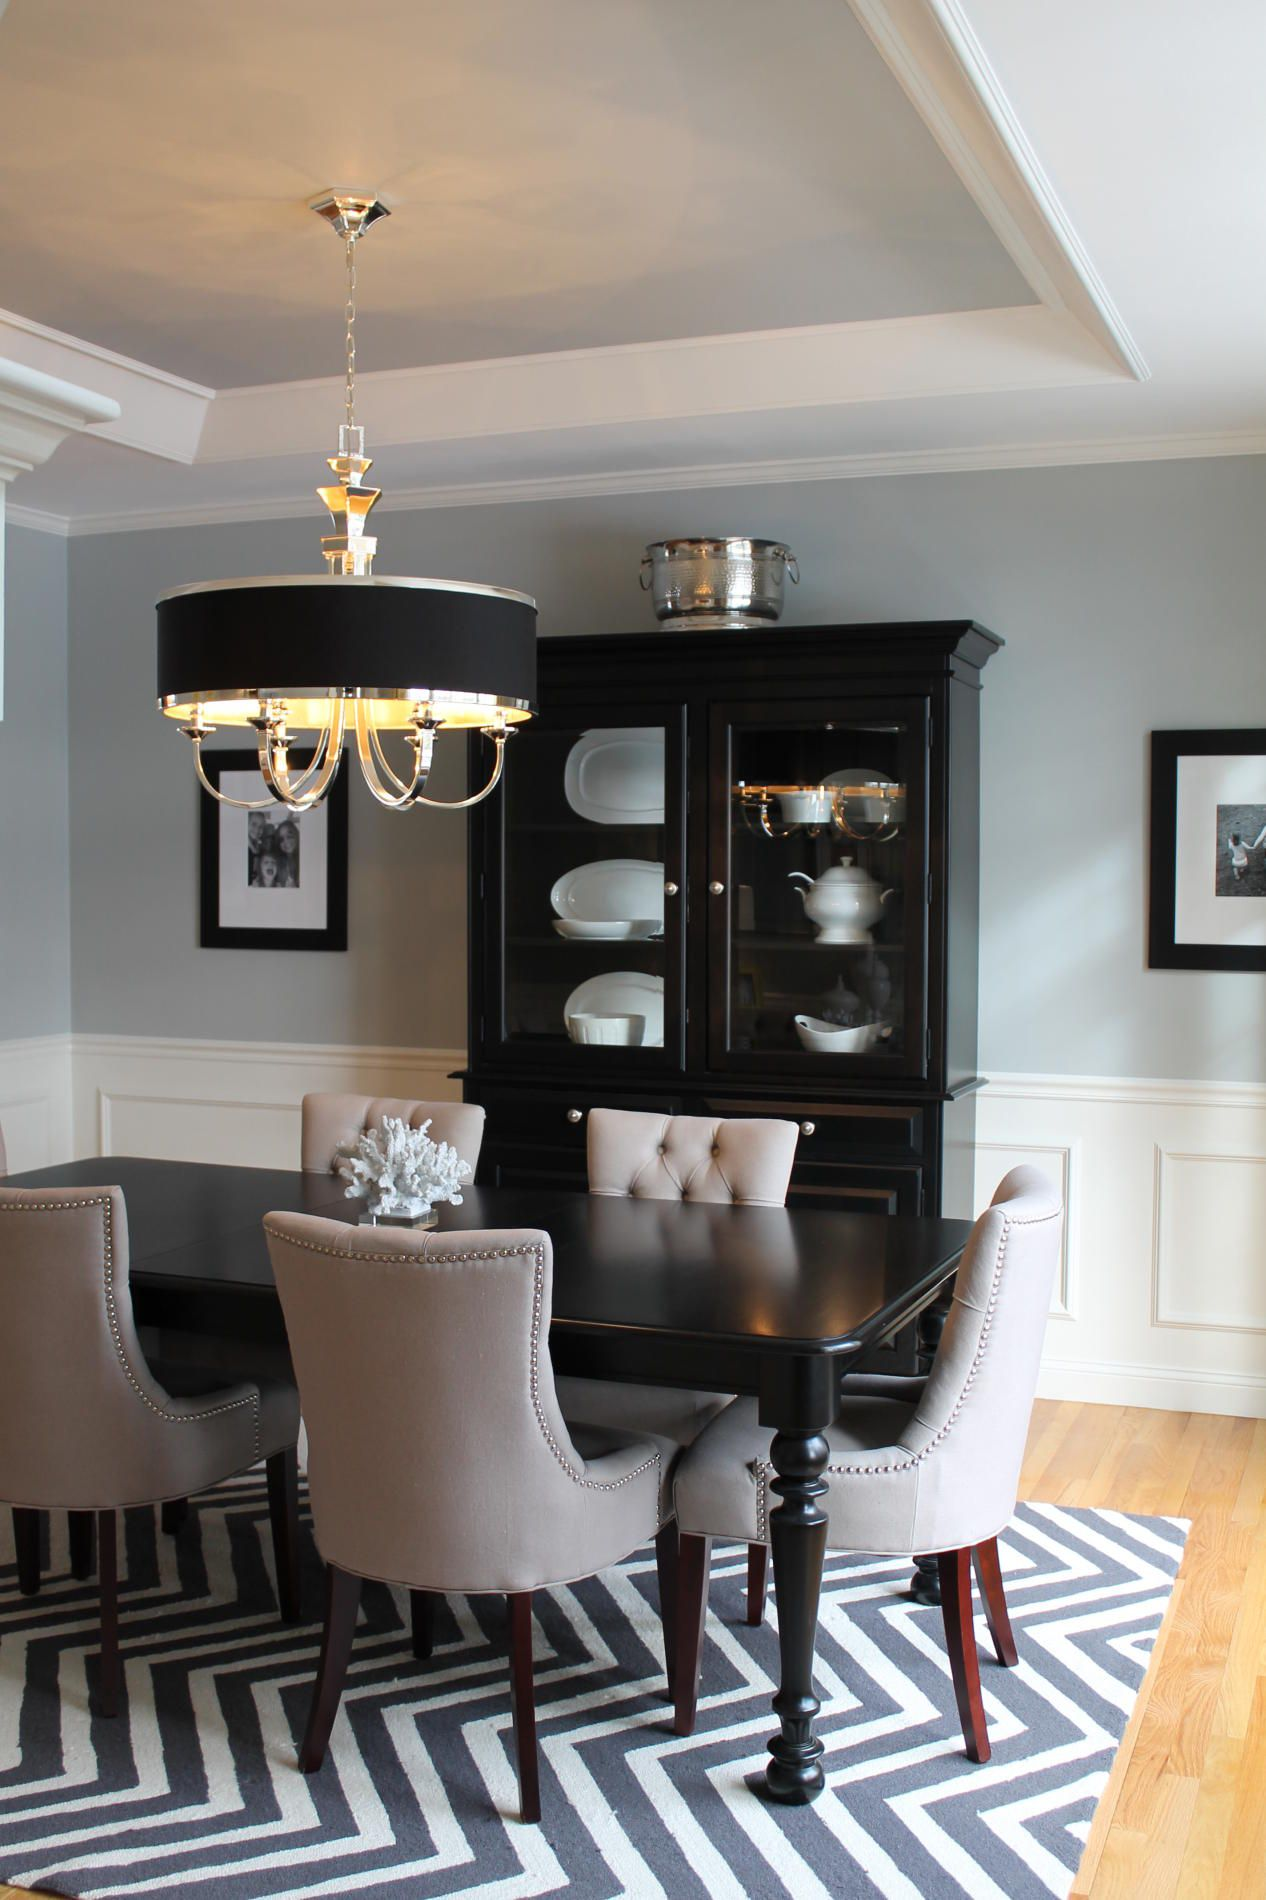 Pale blue dining room walls and ceiling with white